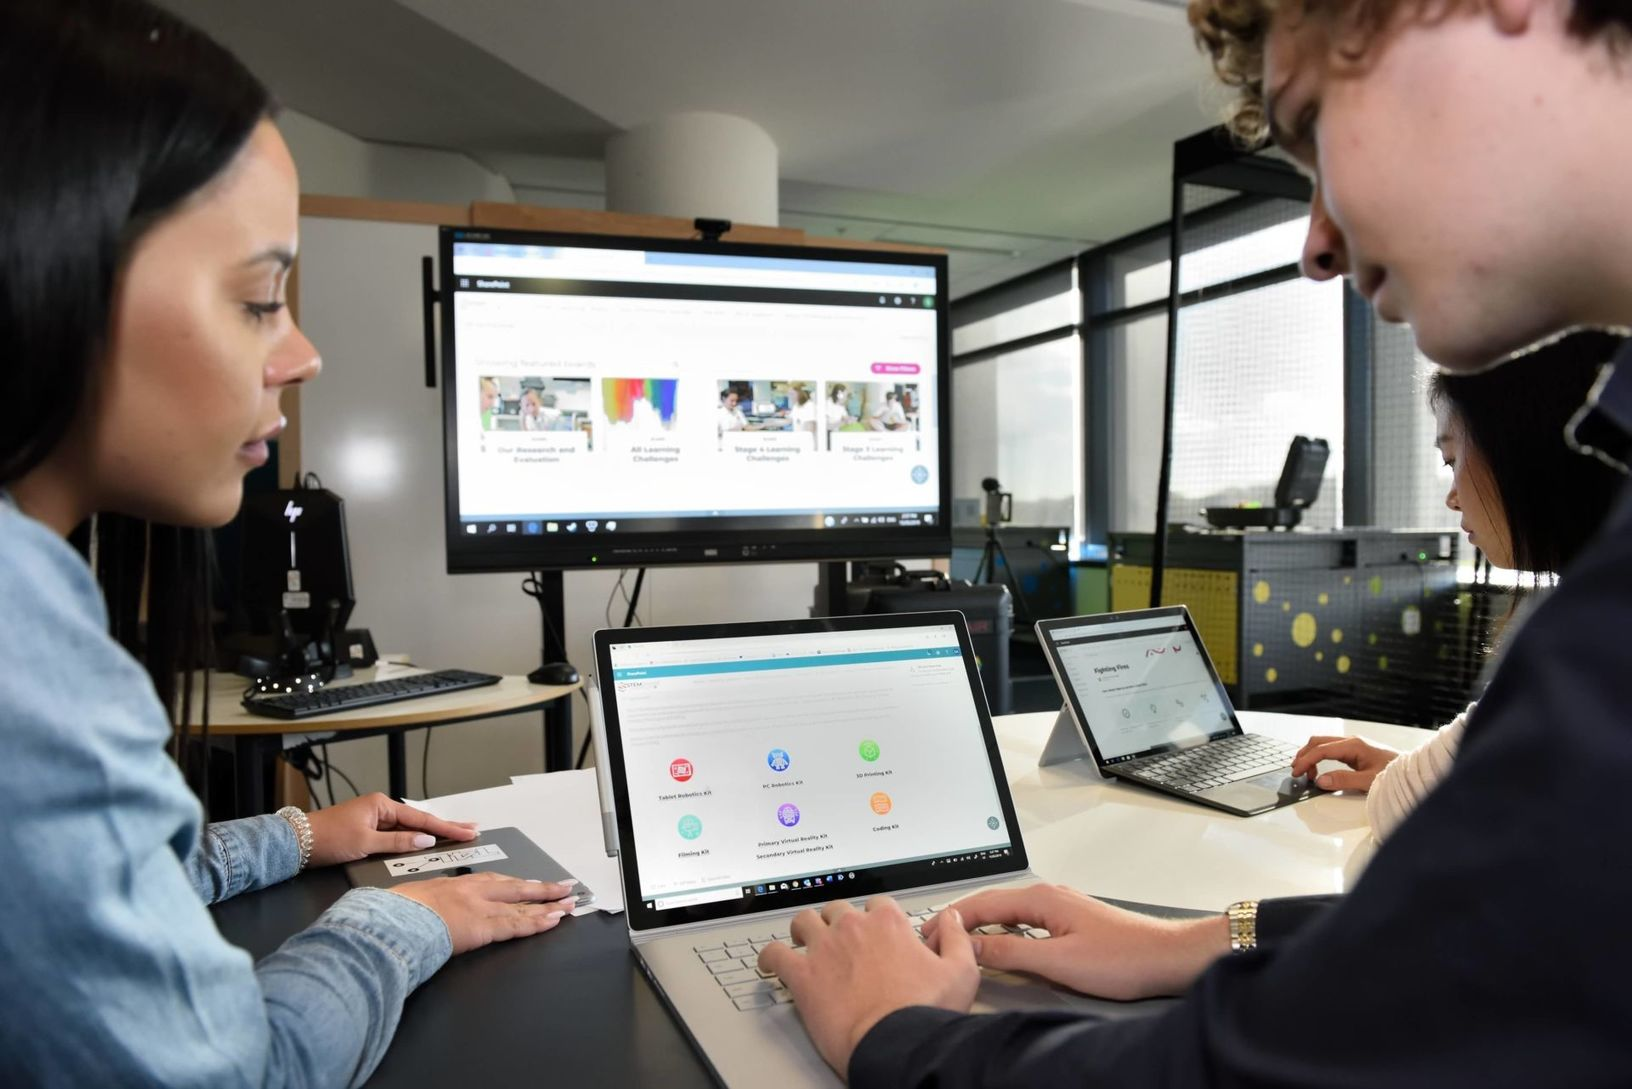 Student-Friendly Apps to Teach Sustainability, The Circular Economy